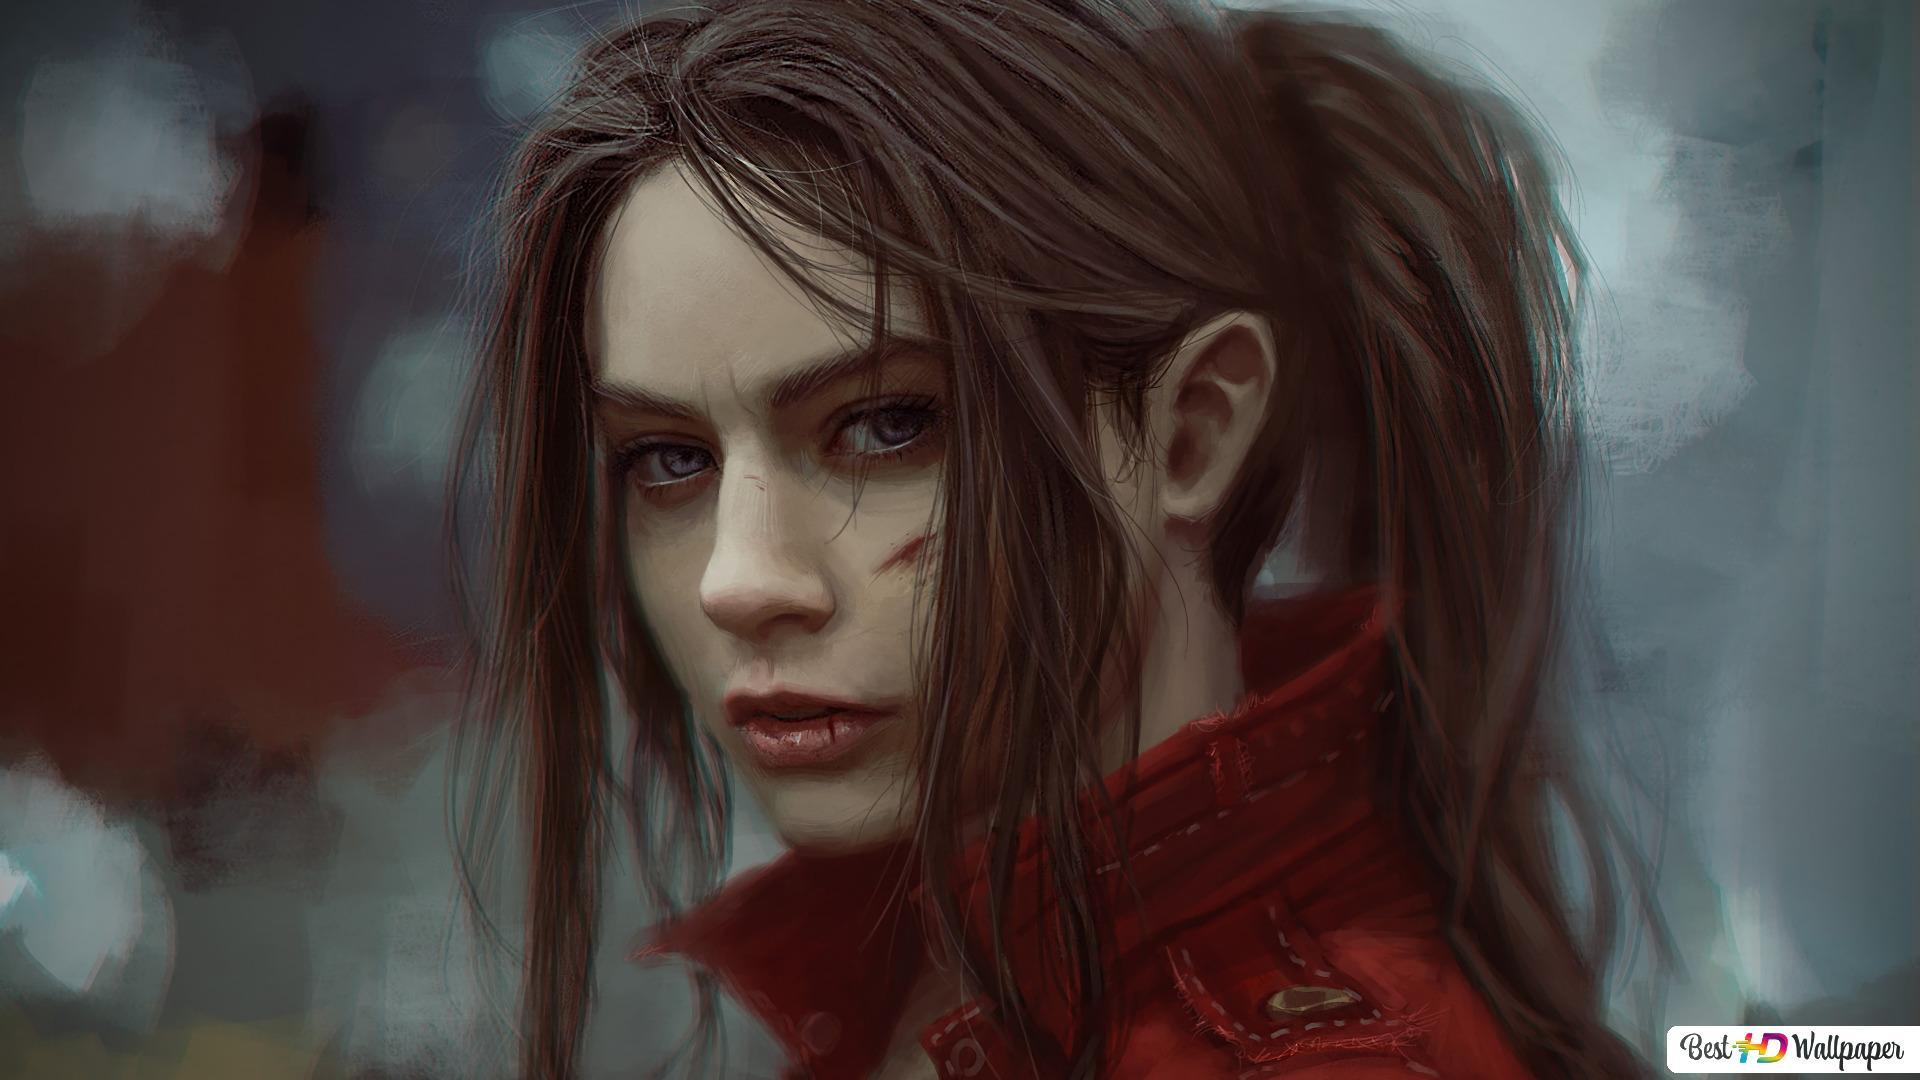 Resident Evil 2 2019 Claire Redfield Hd Wallpaper Download